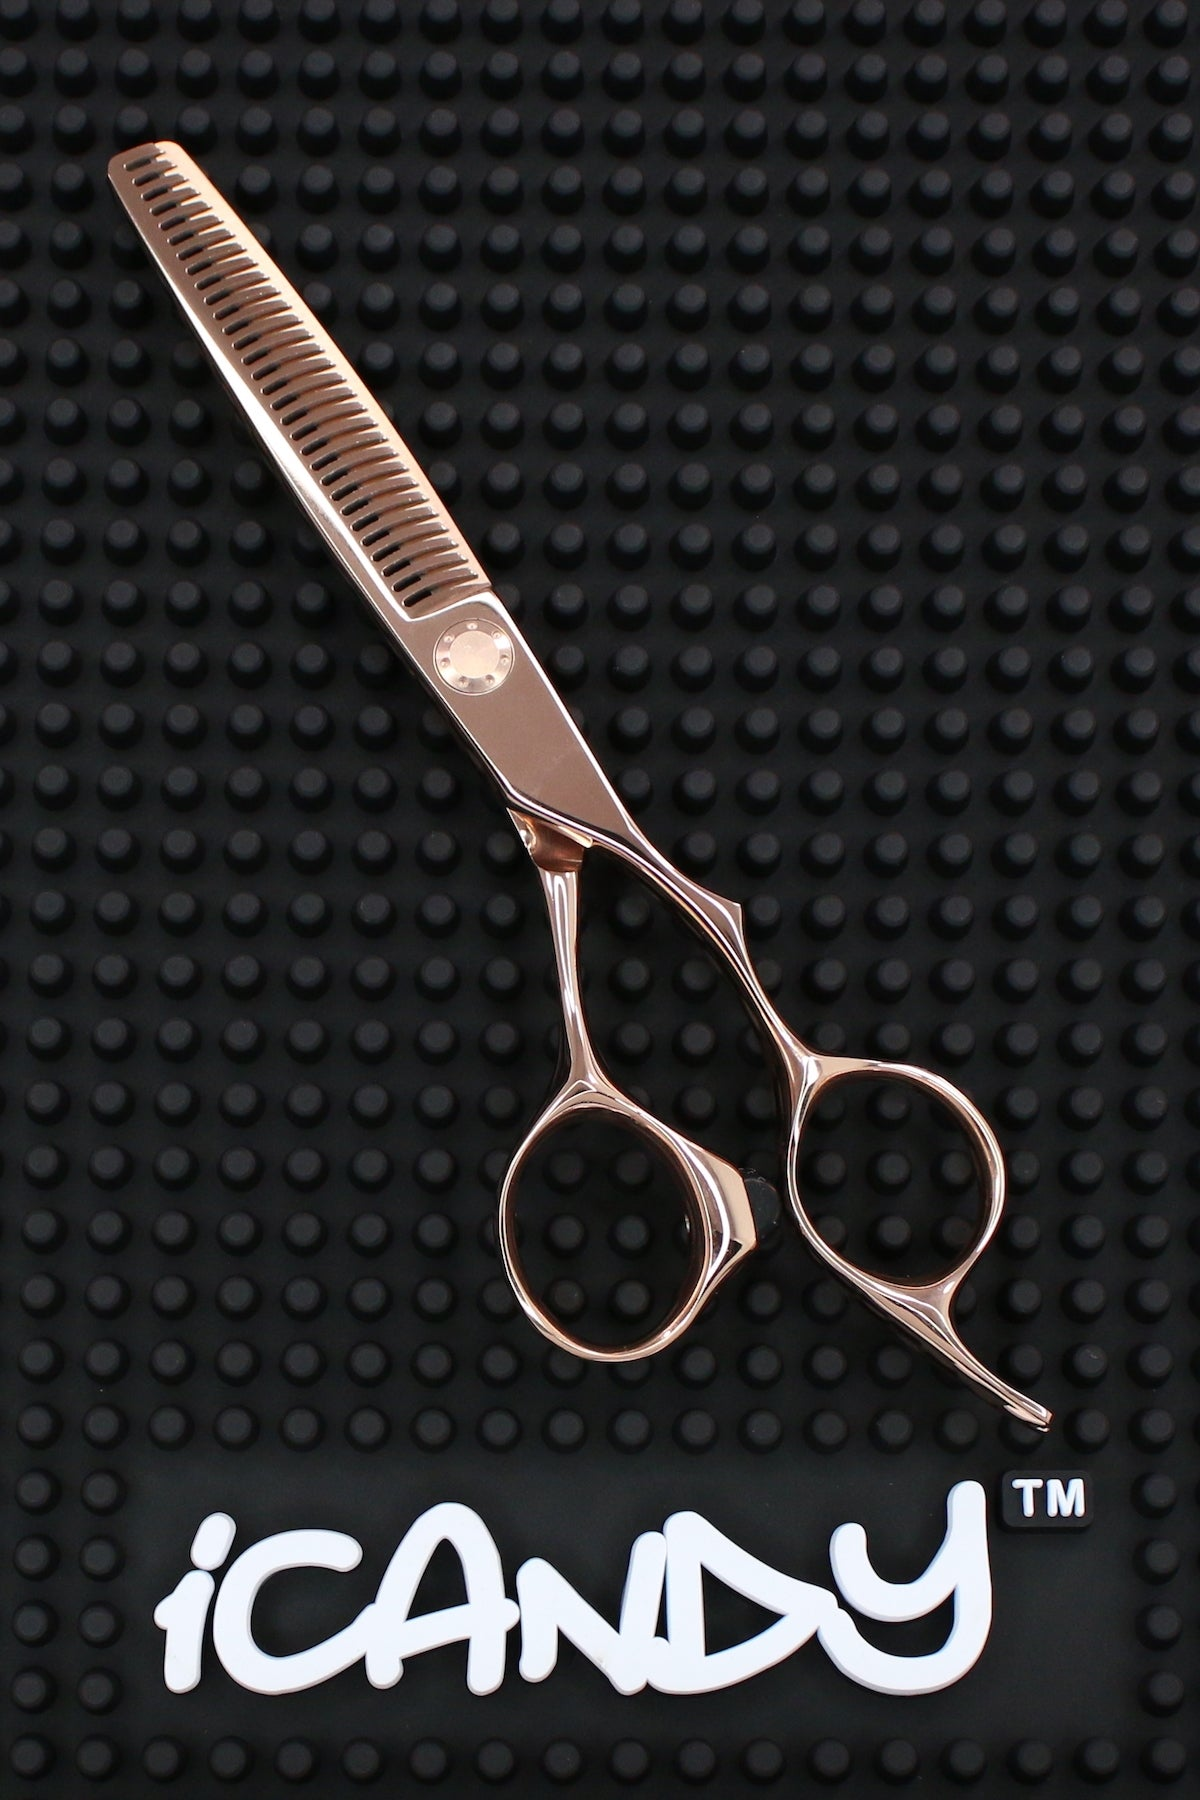 iCandy LUXE Element-T Rose Gold Hairdressing Thinning Scissor  (6.0 inch) Limited Edition! - iCandy Scissors